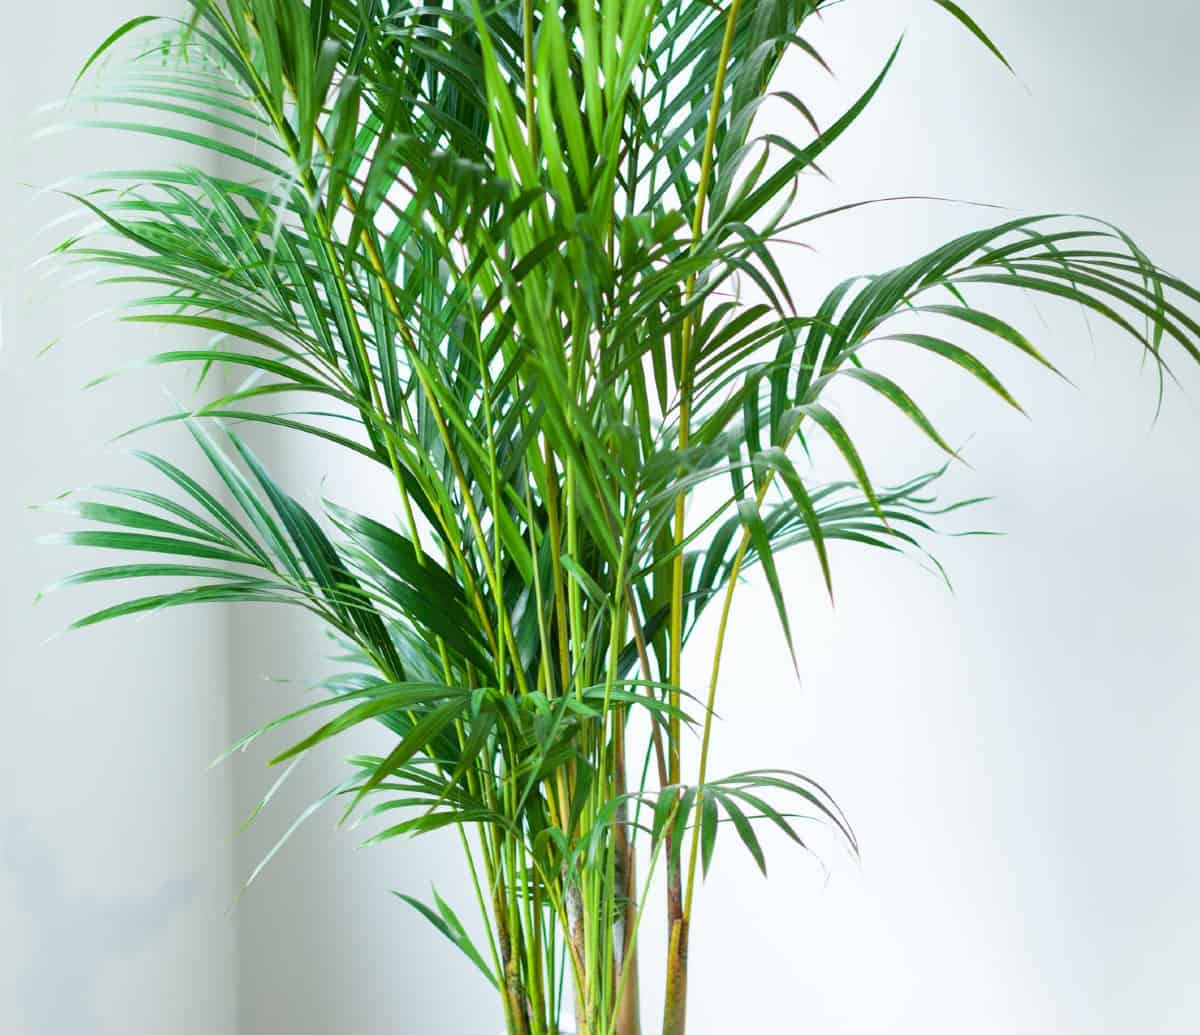 Areca palms have a bamboo-like structure.